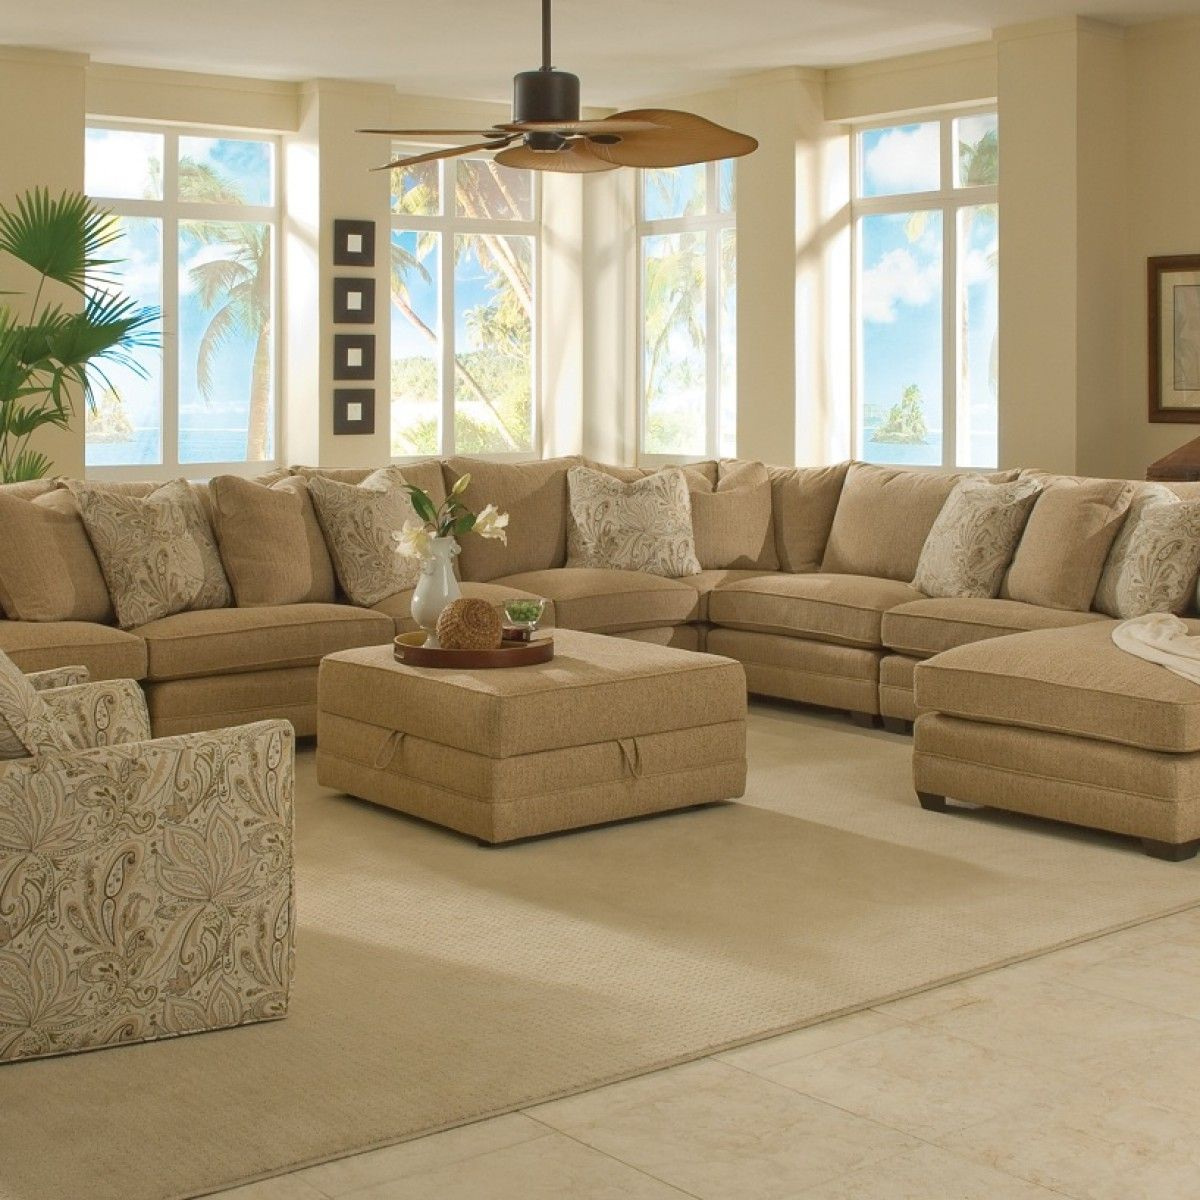 Family Room With Sectional Sofa Of Magnificent Large Sectional Sofas Family Room